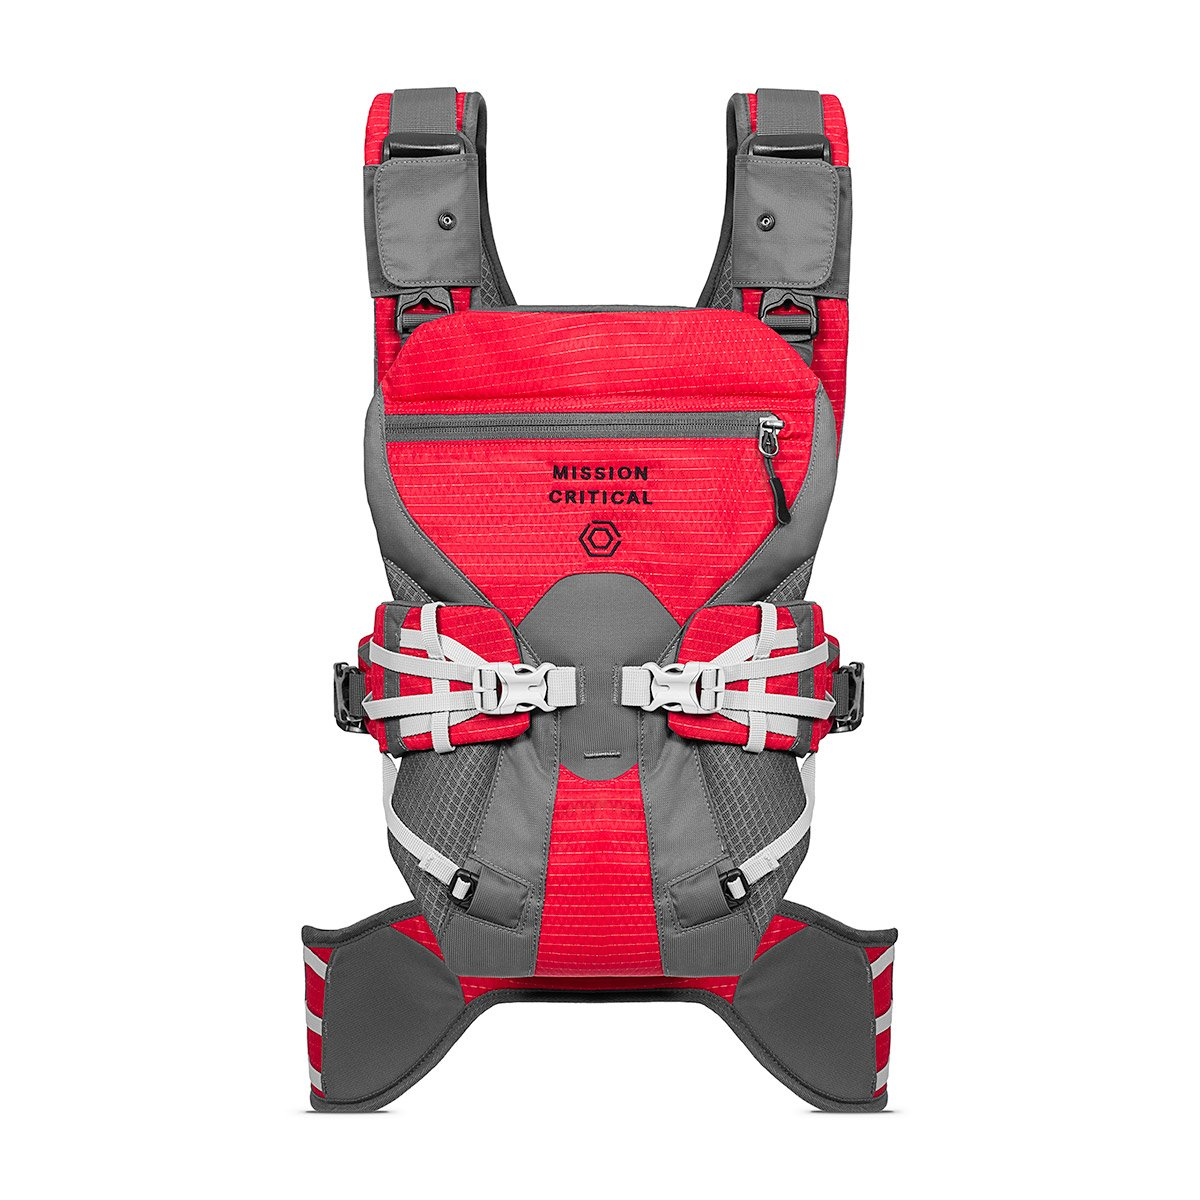 S.02 Adventure Baby Carrier - Rover Kit